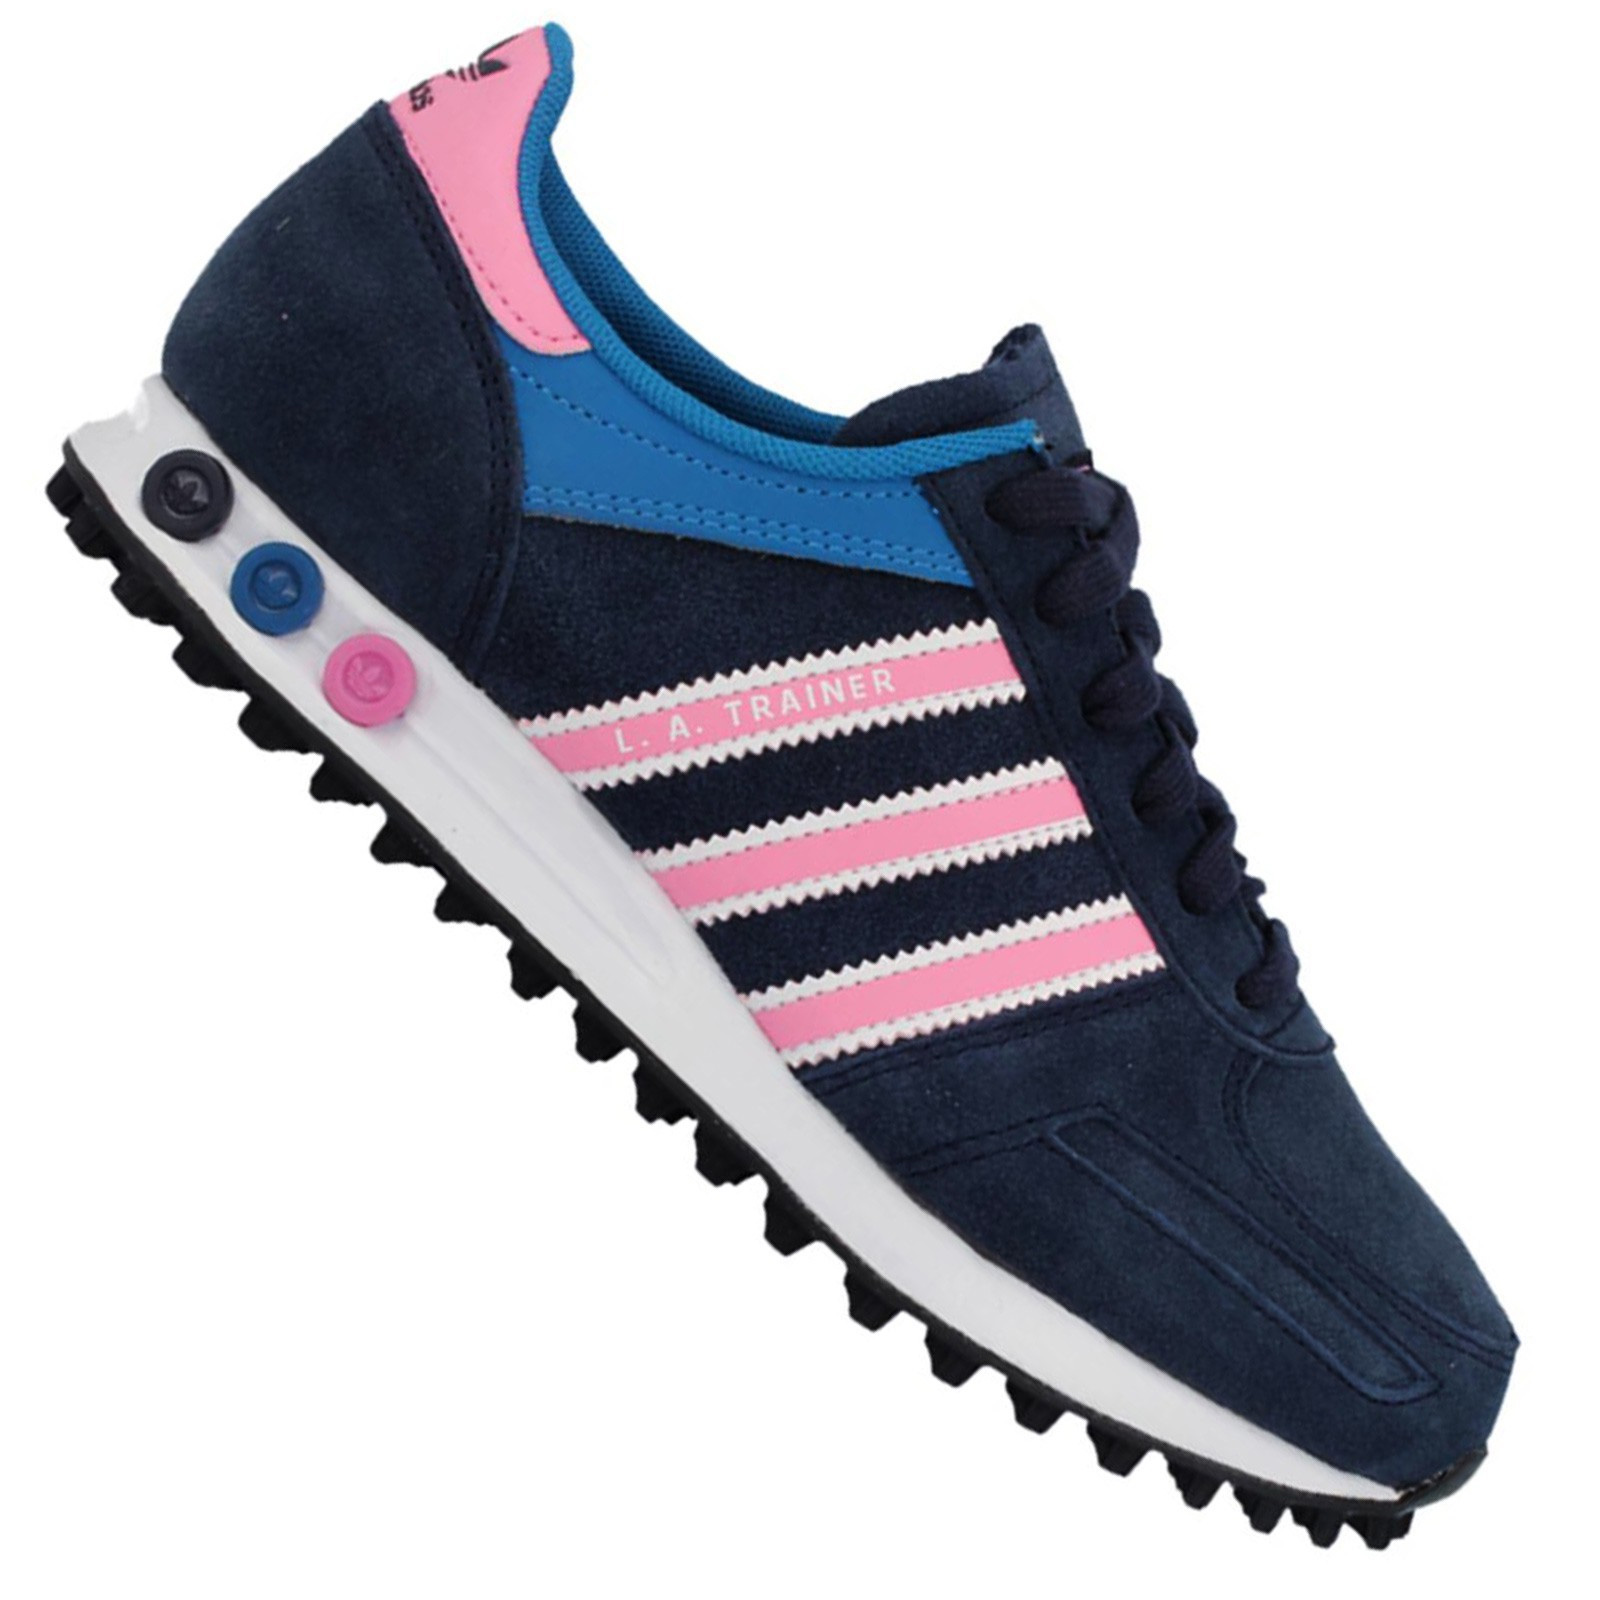 Details about Adidas Originals La Trainer Womens Trainers Running Shoes  Casual Shoes Sneakers- show original title